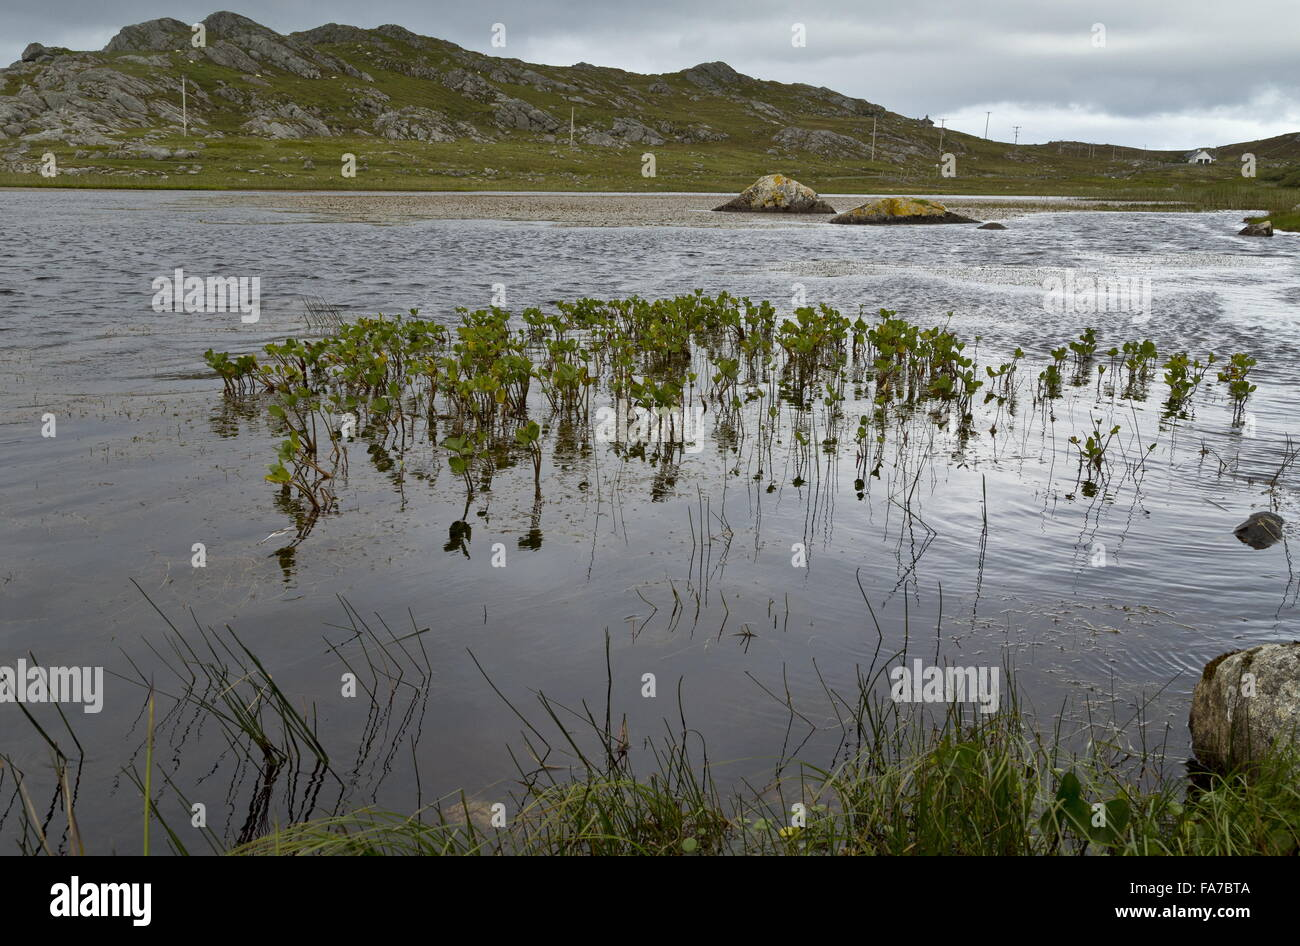 Bogbean growing in Loch Ballyhaugh, the island of Coll, Inner Hebrides, Scotland. - Stock Image